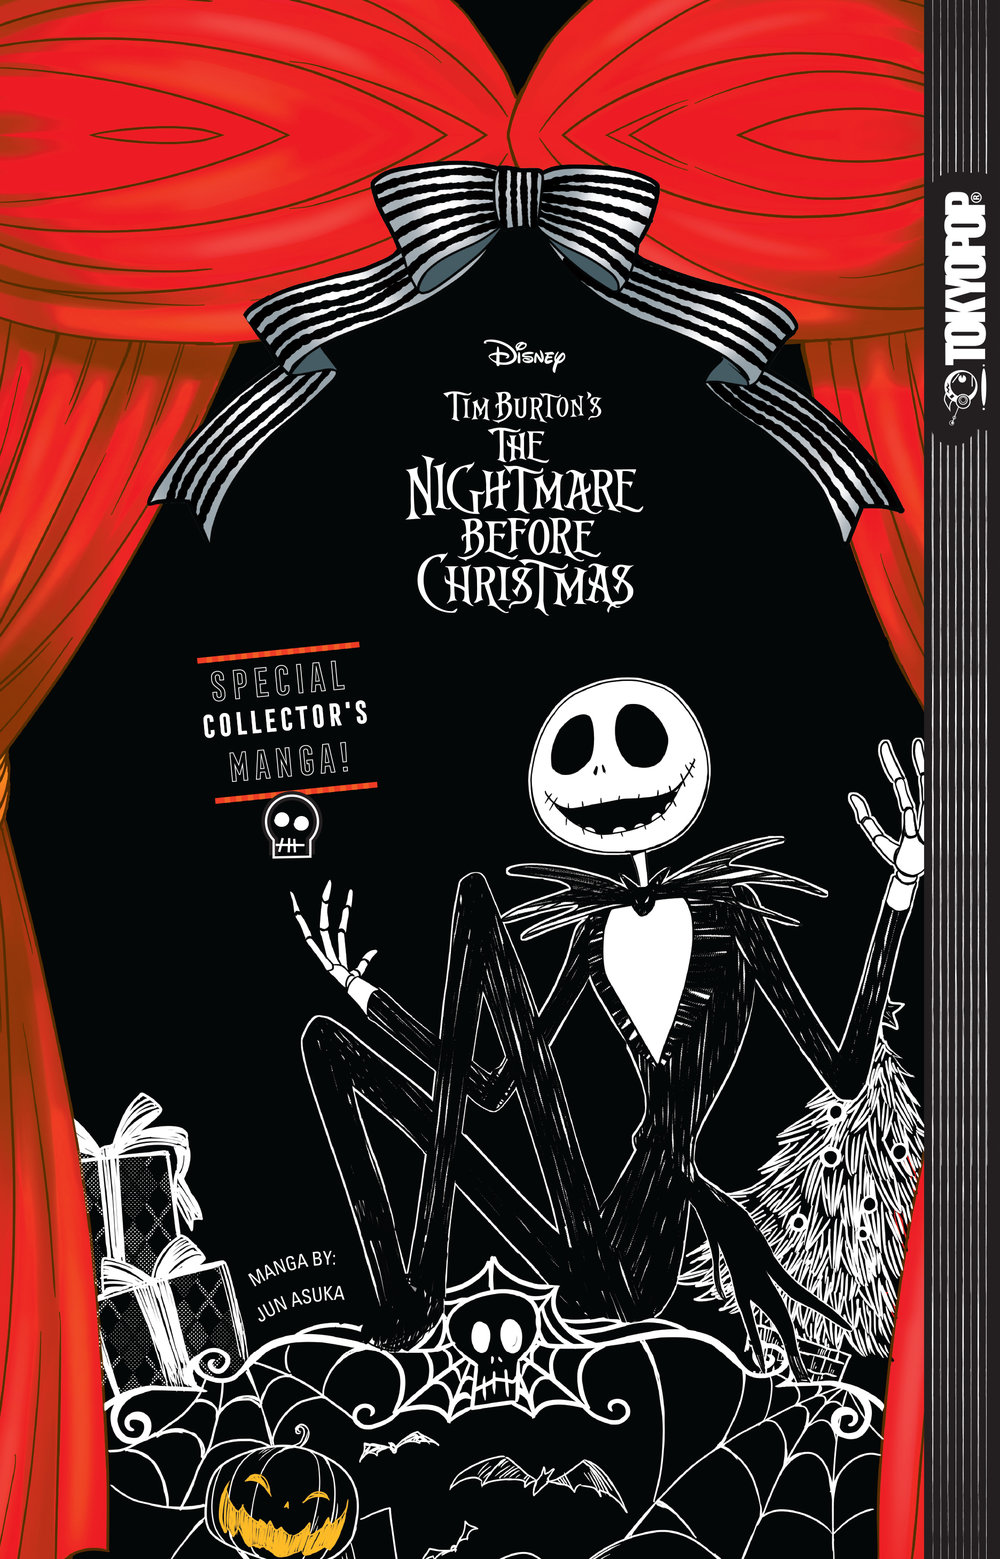 Disney Tim Burton's The Nightmare Before Christmas (special collector's edition)